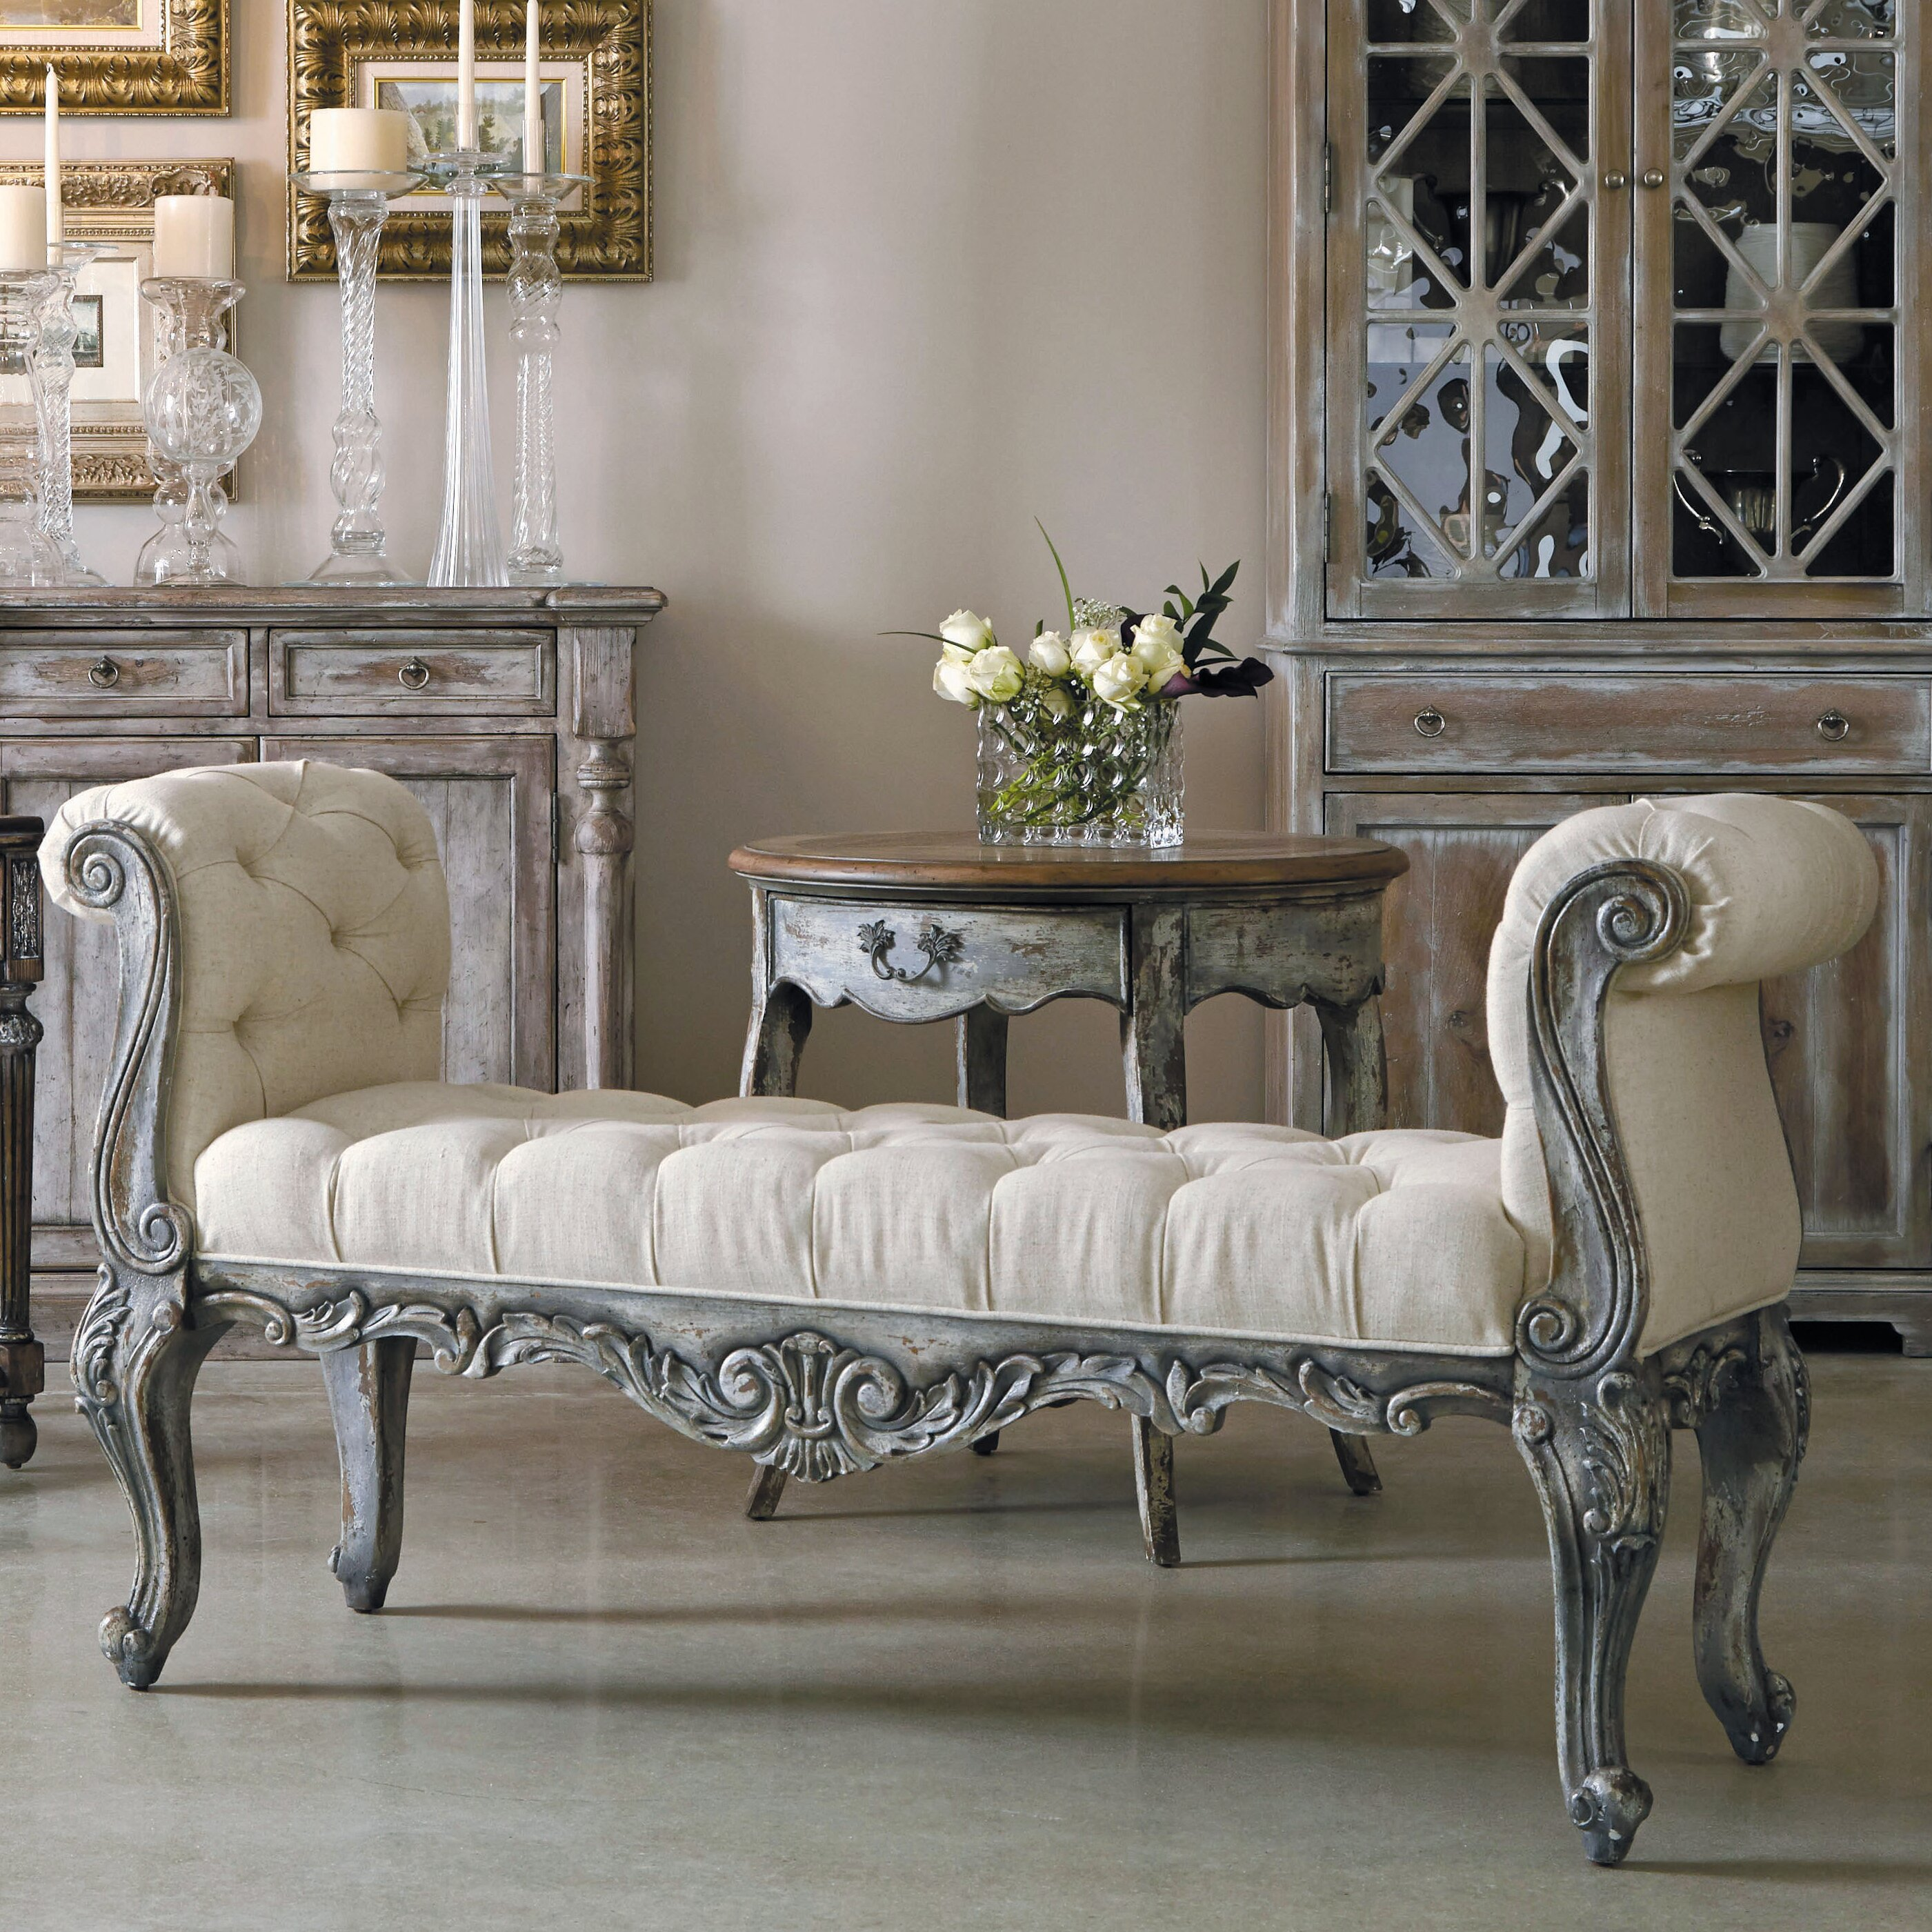 Bedroom Bench Ideas Bedroom Sets Living Spaces Bedroom Colour Ideas Grey And Purple Simple Bedroom Arrangement Ideas: Accentrics By Pulaski St. Tropez Upholstered Bedroom Bench